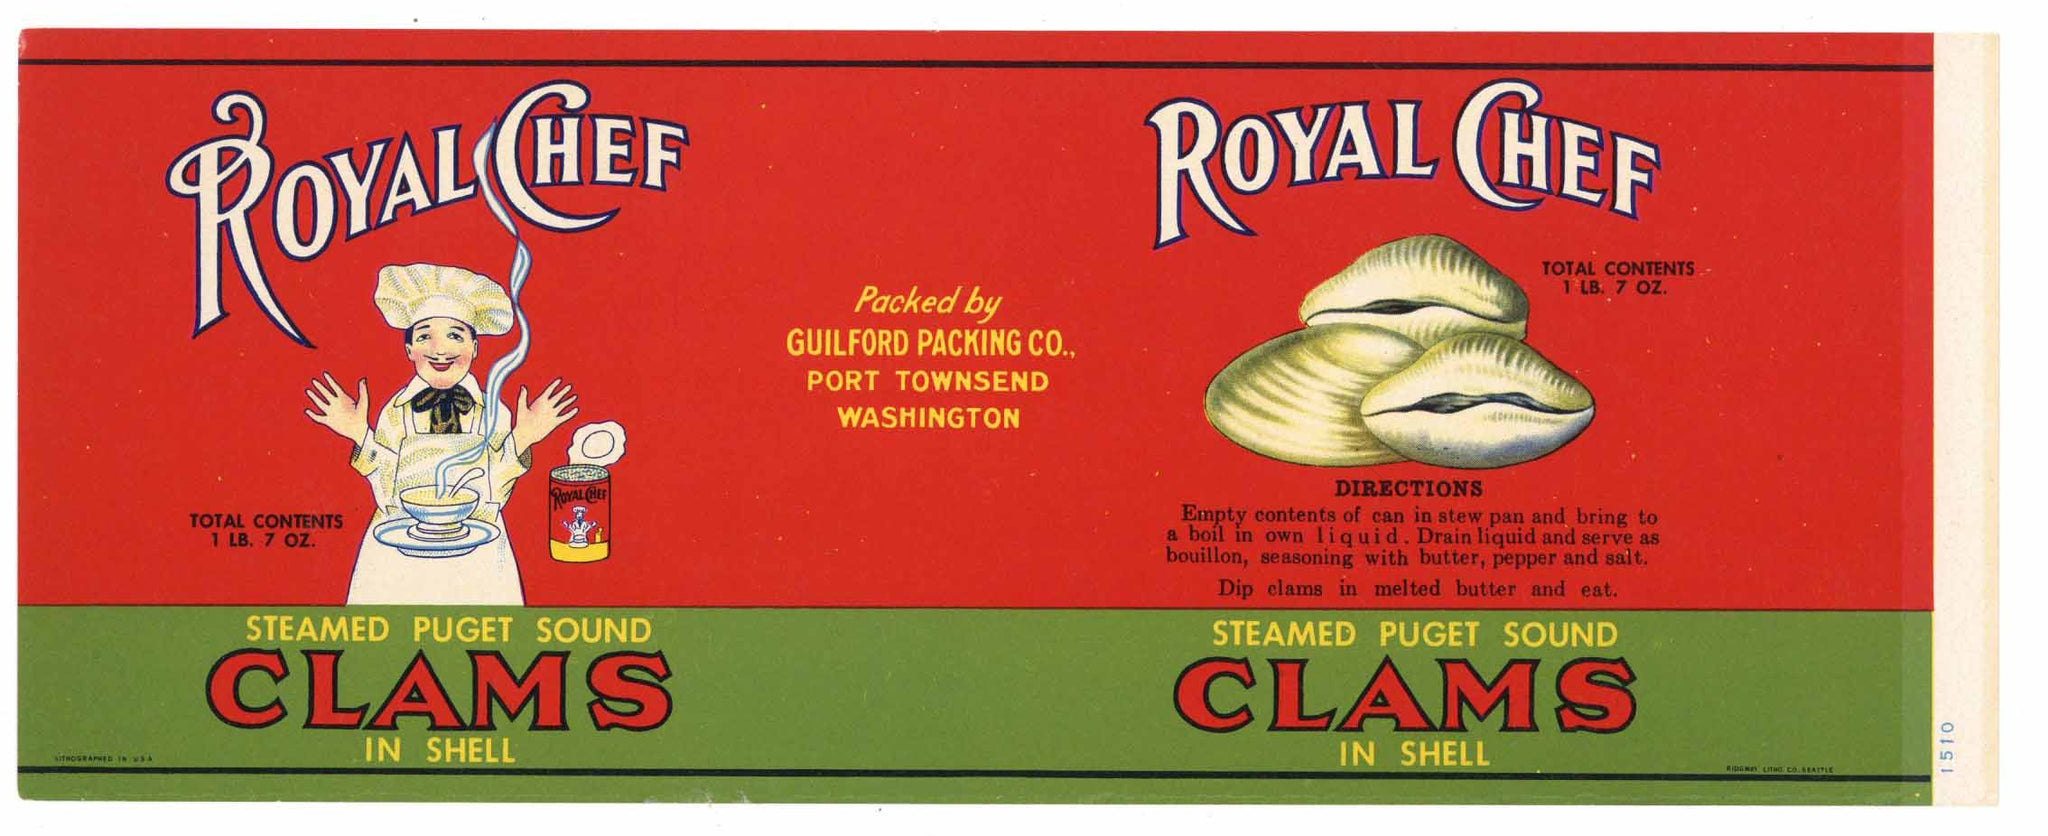 Royal Chef Brand Vintage Port Townsend Clam Can Label